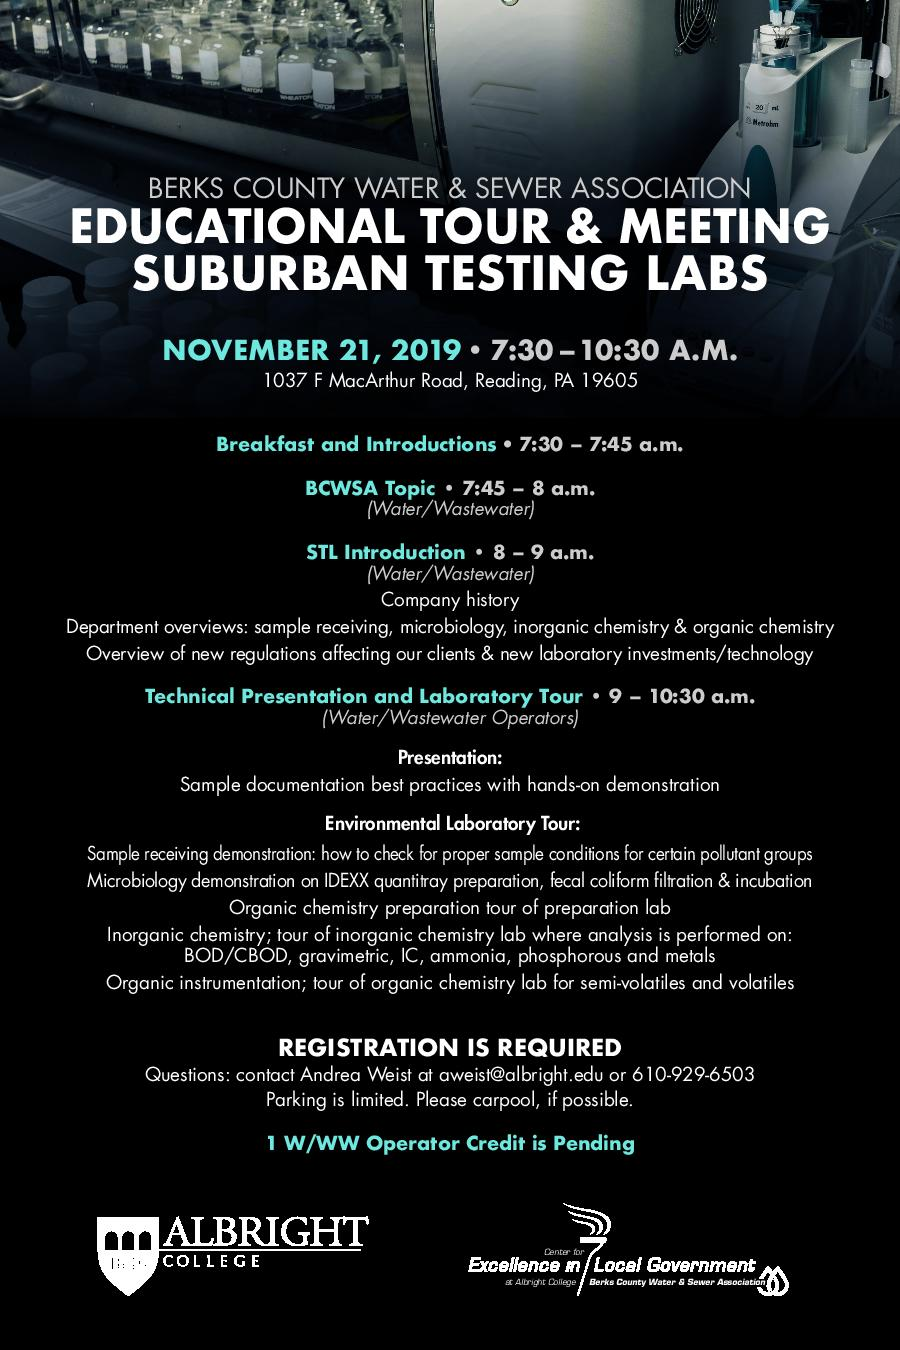 Educational Tour and Meeting Suburban Testing Lab